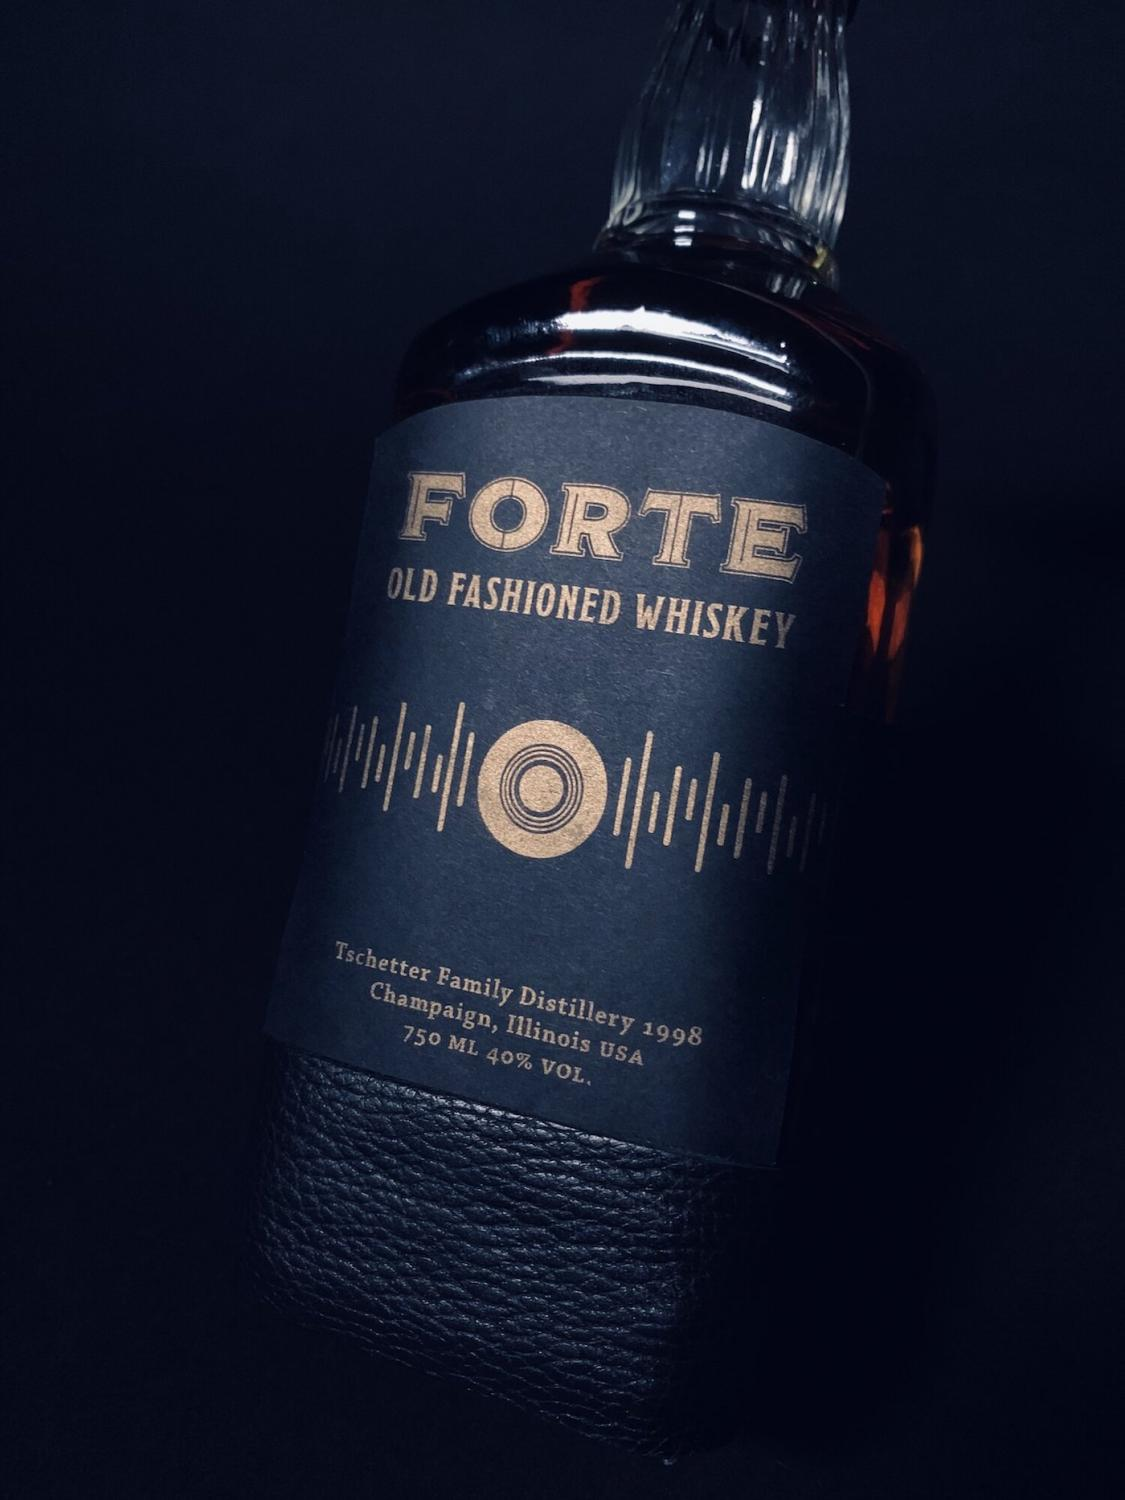 Black whiskey bottle with gold  text that says Forte Whiskey and graphics that look like the bars of an amplifier display. It is a branding concept design by Pascale Grant.